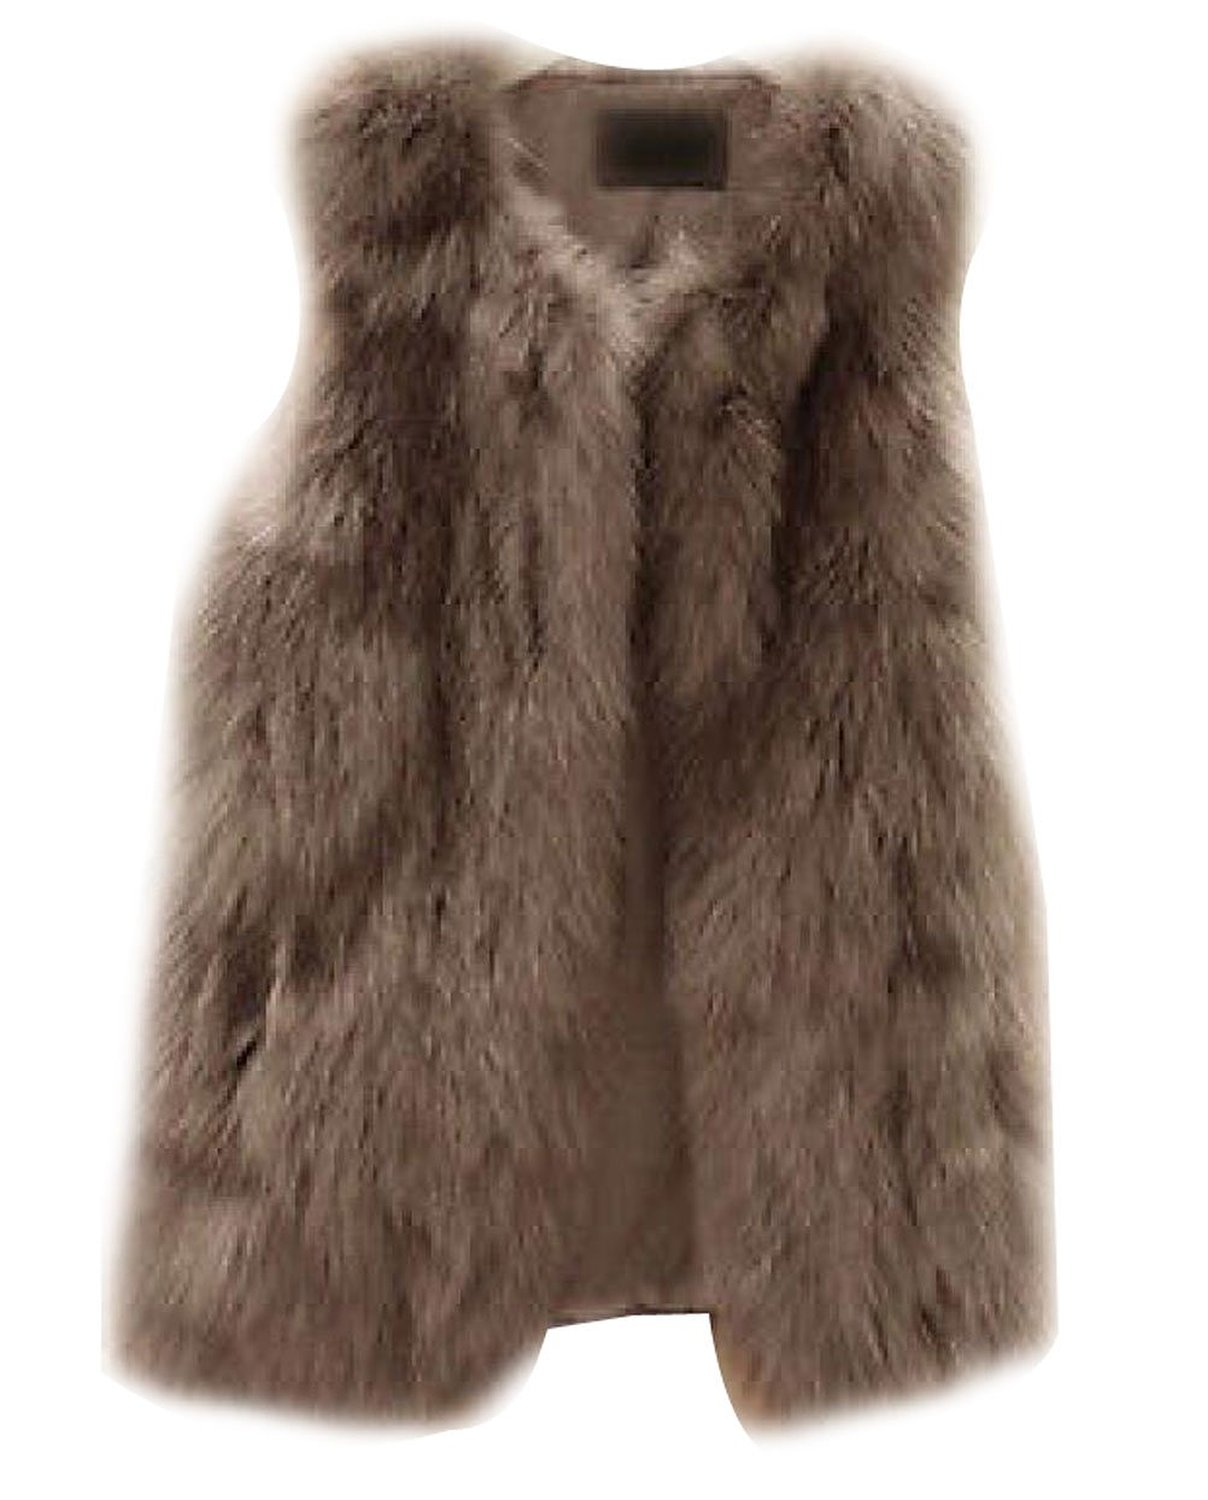 Women's Faux Fox Fur Vest Long Fur Jacket Warm Faux Fur Coat Outwear. from $ 30 00 Prime. out of 5 stars 5. Dikoaina. Women's Solid Color Shaggy Faux Fur Coat Jacket $ 34 99 Prime. out of 5 stars vogueearth. Women' Classic Faux Fur Rex Rabbit Autumn Winter Warm Long Vests.